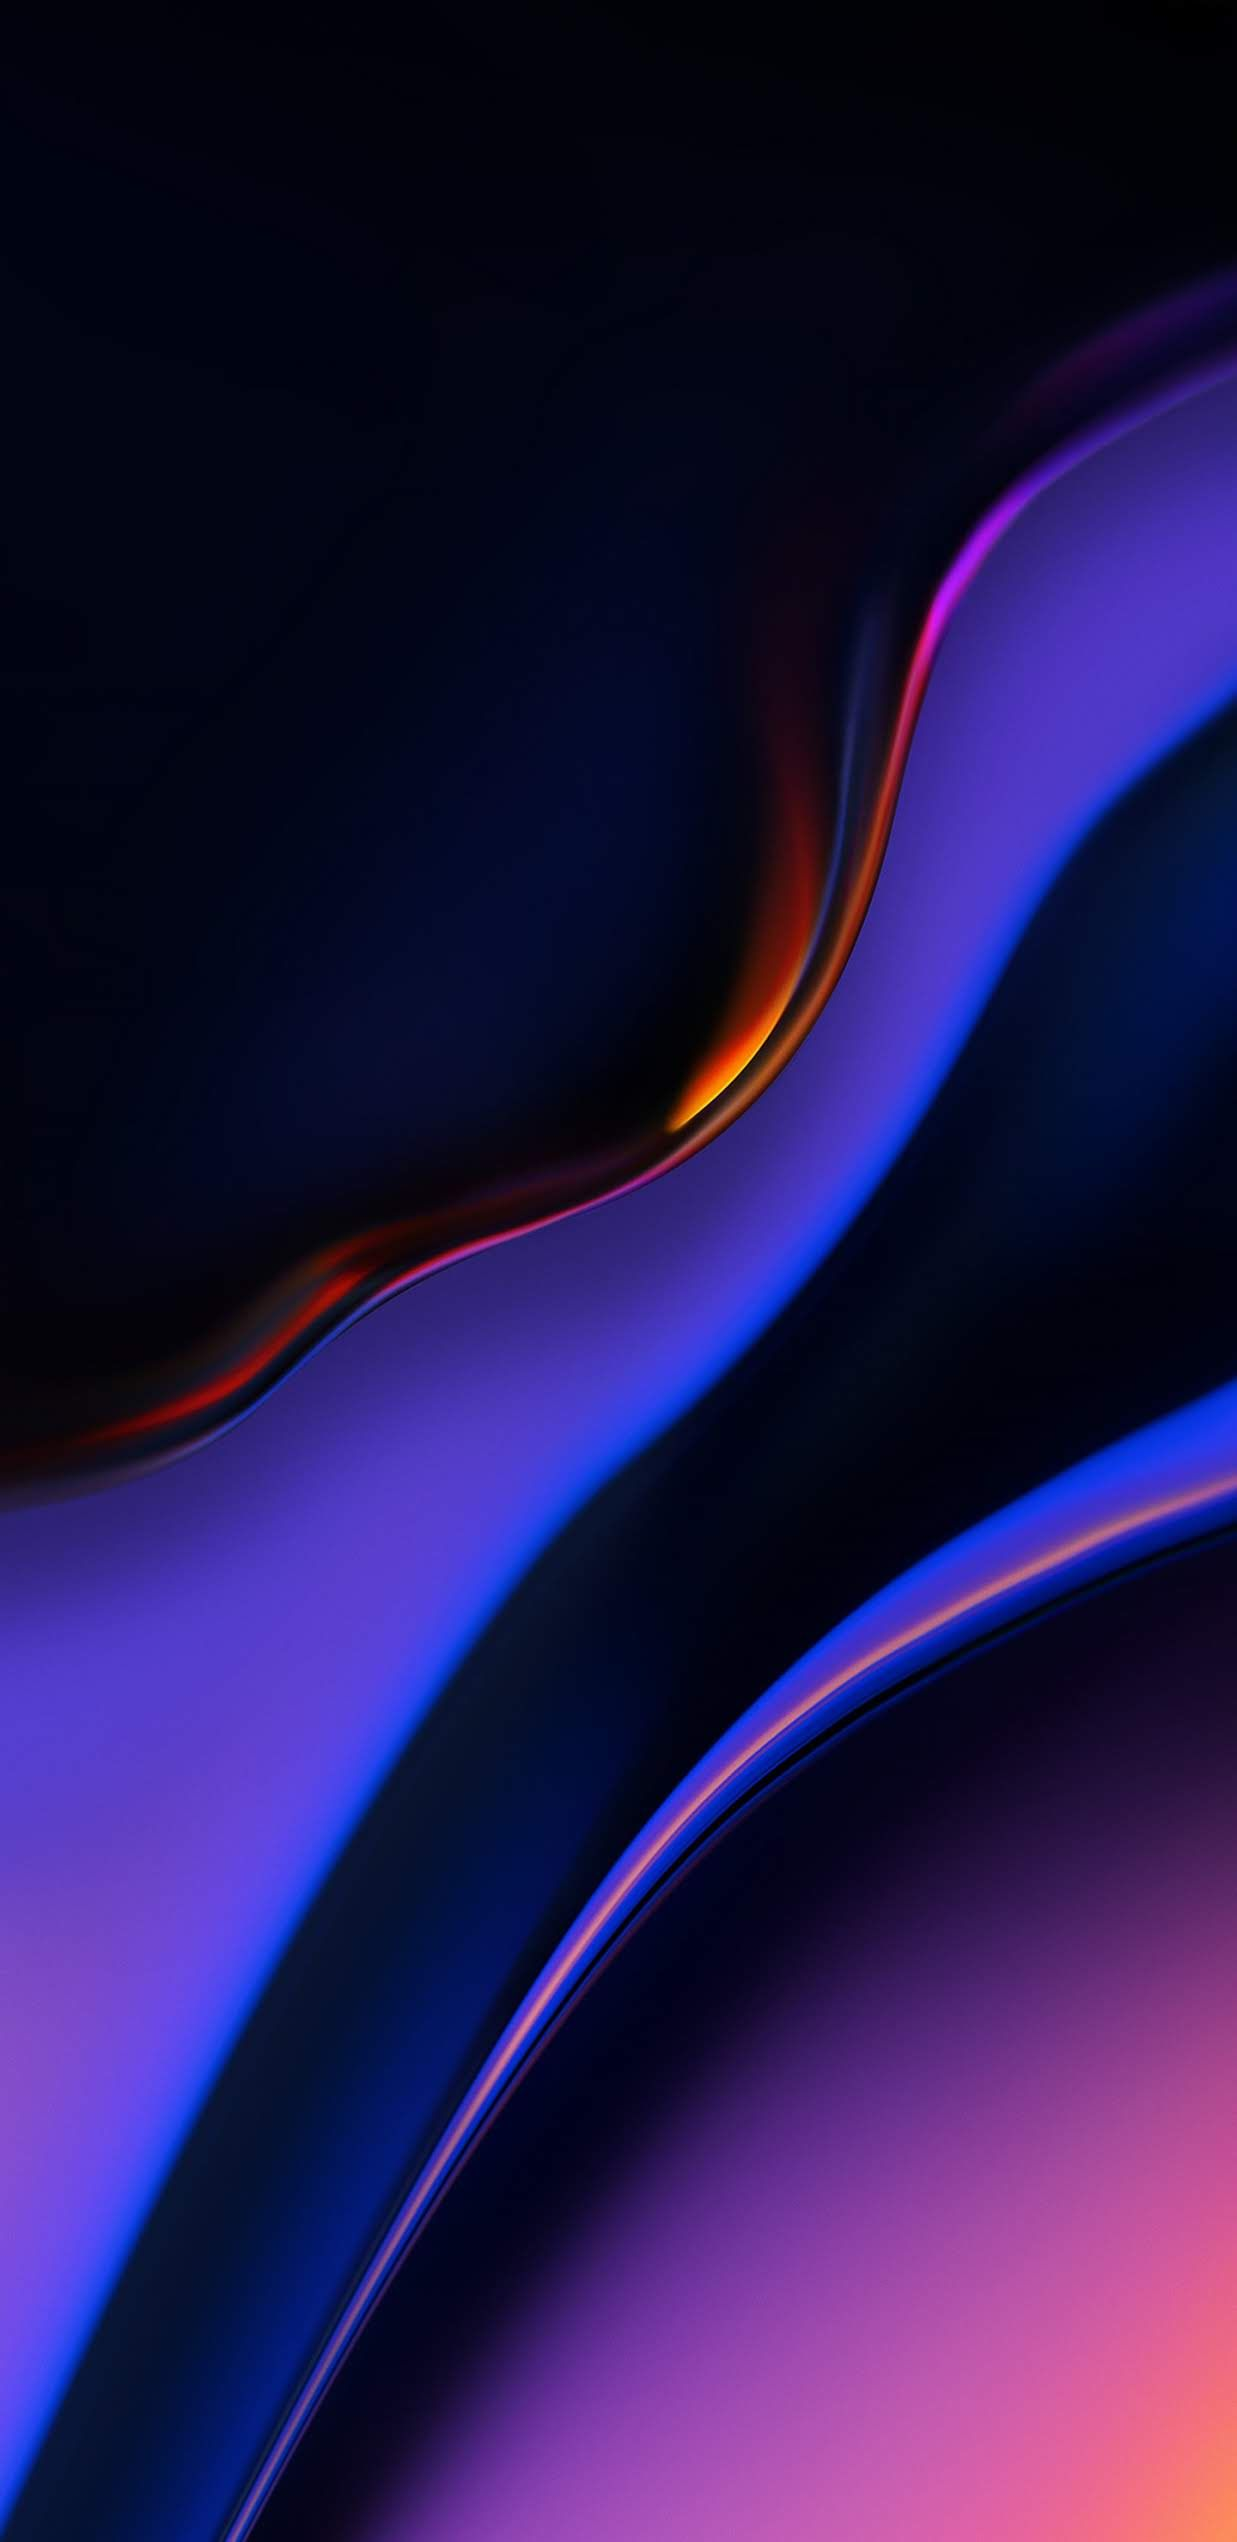 Here are 6 high resolution stock wallpapers from the